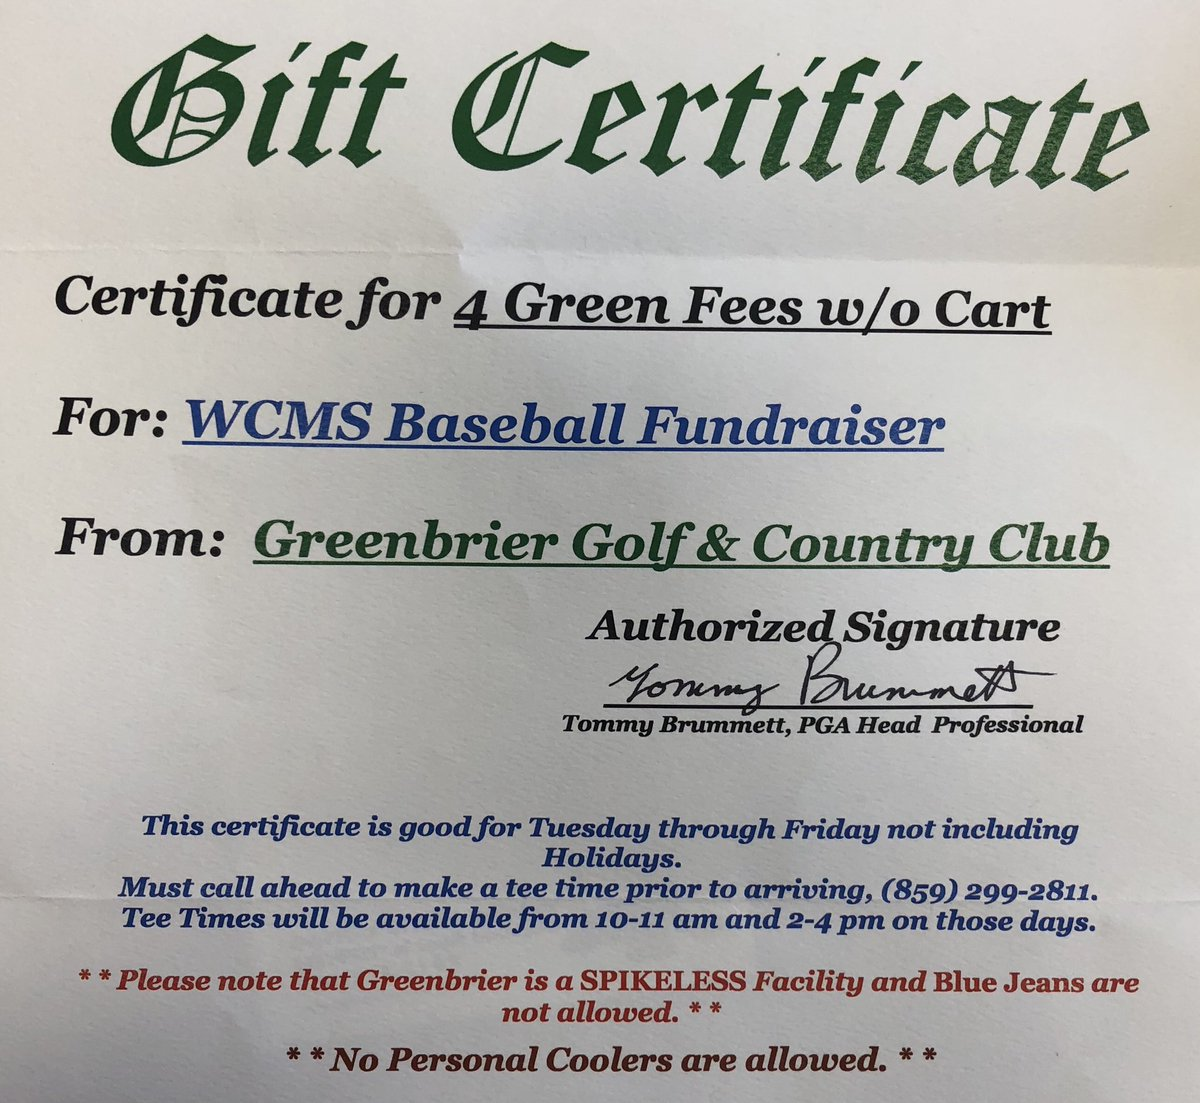 Jonesing for a day on the course? Like and retweet for your chance to win this gift certificate! #golfday <br>http://pic.twitter.com/9aEdhNZxMj